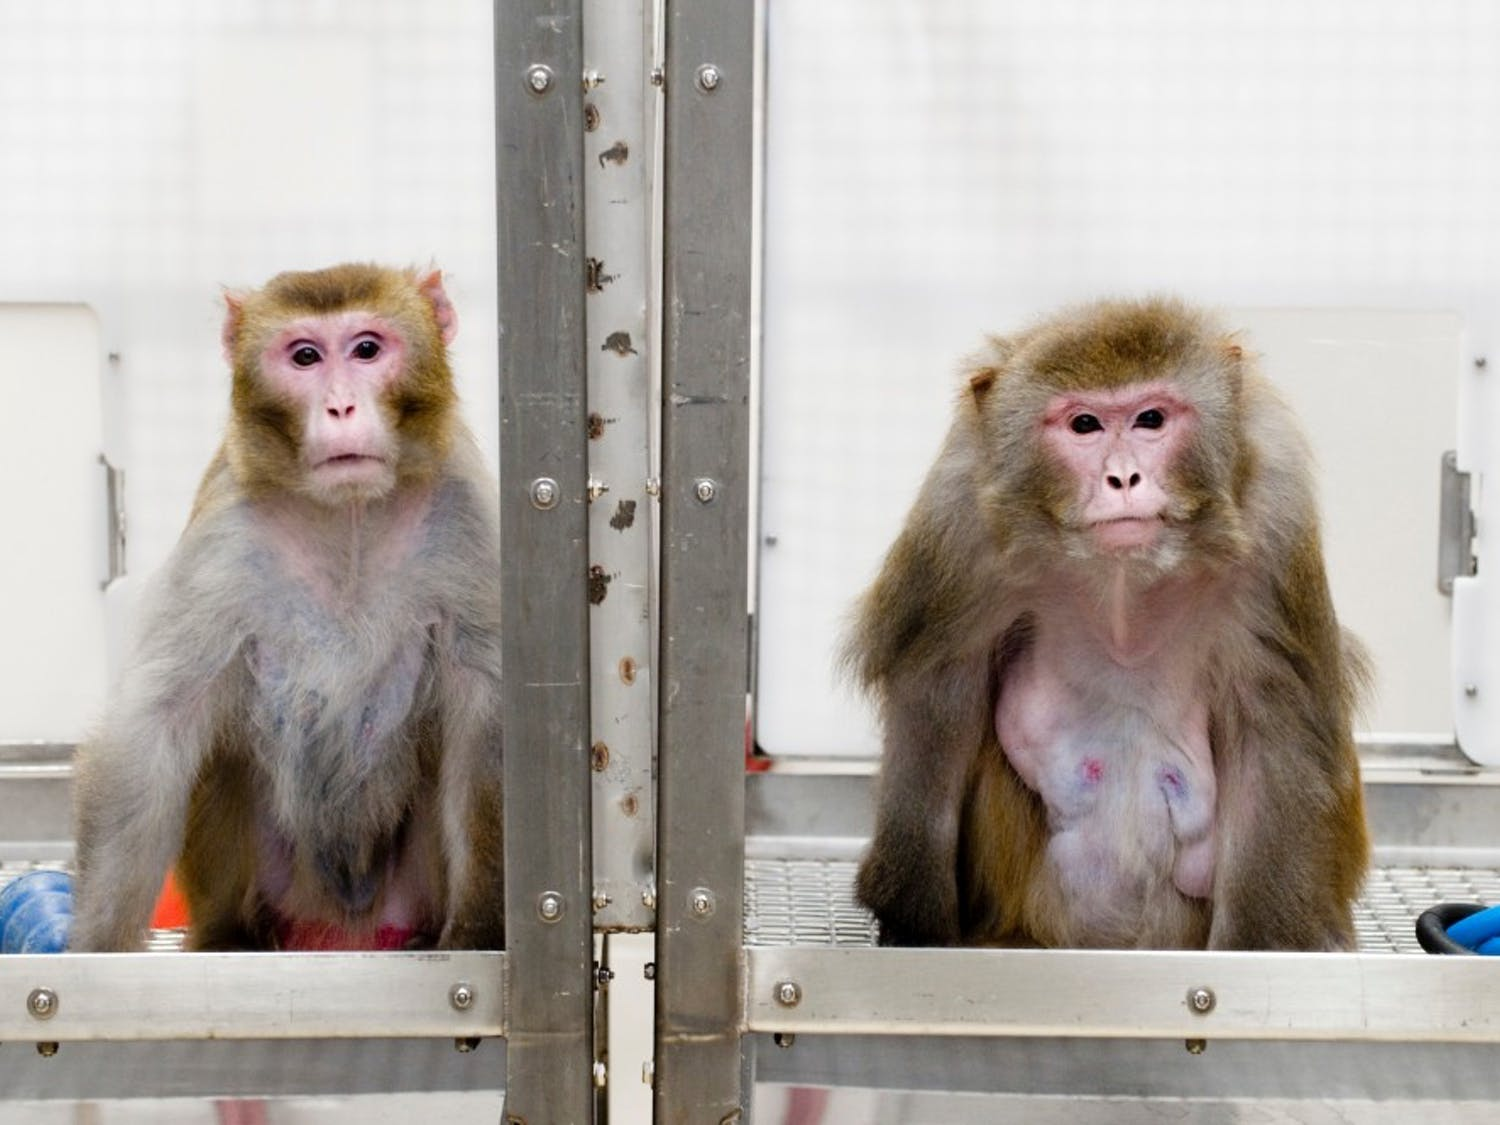 Rhesus monkeys, left to right, Canto, 27, and on a restricted diet, and Owen, 29, and a control subject on an unrestricted diet, are pictured at the Wisconsin National Primate Research Center at the University of Wisconsin-Madison on May 28, 2009. The two are among the oldest surviving subjects in a pioneering long-term study of the links between diet and aging in Rhesus macaque monkeys, which have an average life span of about 27 years in captivity. Lead researcher Richard Weindruch, a professor of medicine in the UW School of Medicine and Public Health, and co-author Ricki Colman, associate scientist at the Wisconsin National Primate Research Center, report new findings in the journal Science that a nutritious, but reduced-calorie, diet blunts aging and delays the onset of such aged-related disorders as cancer, diabetes, cardiovascular disease and brain atrophy.